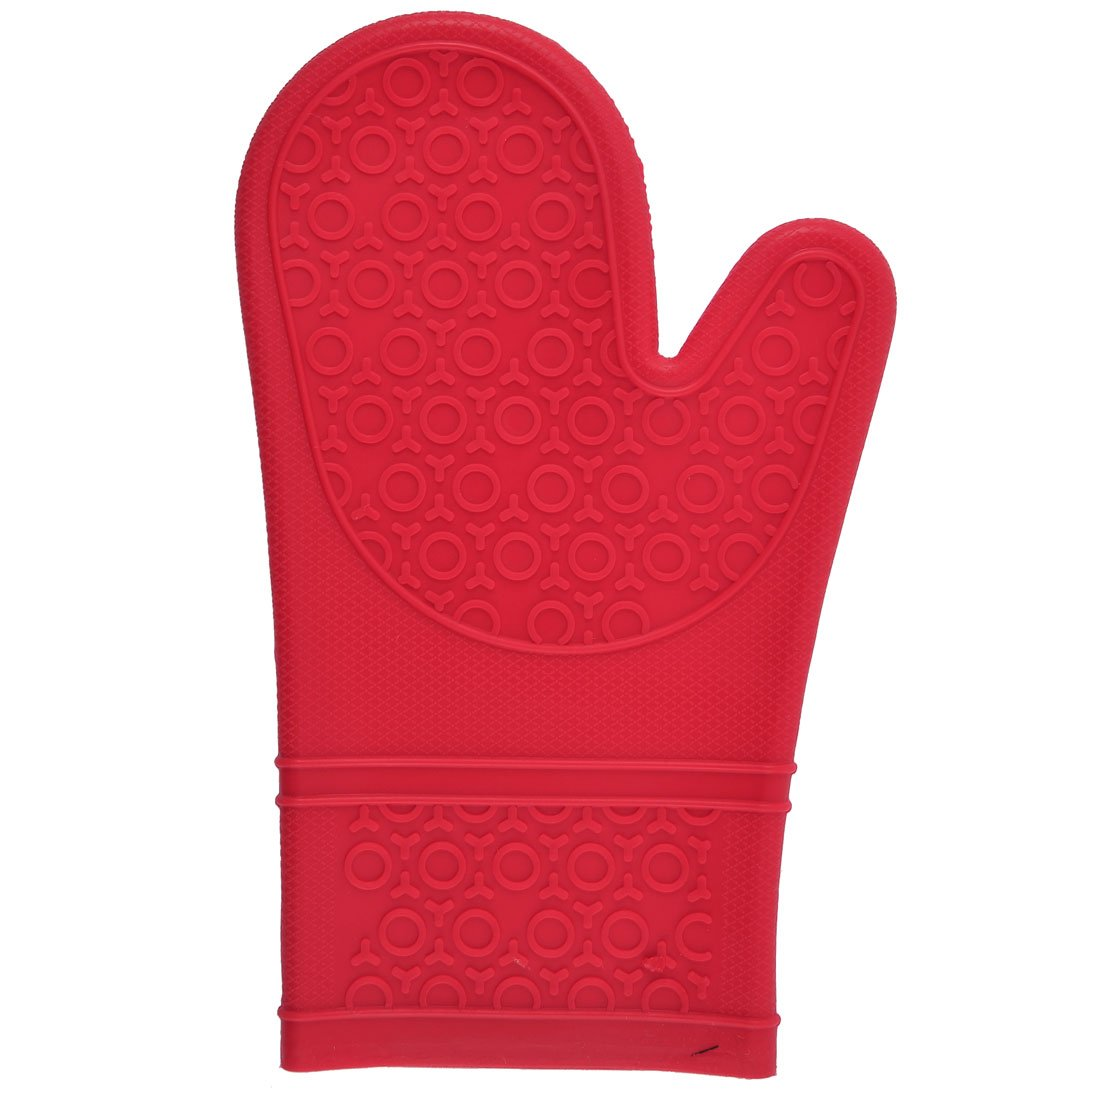 uxcell Silicone Kitchen Grilling Heat Insulated 5-Finger Oven Mitt Glove Red